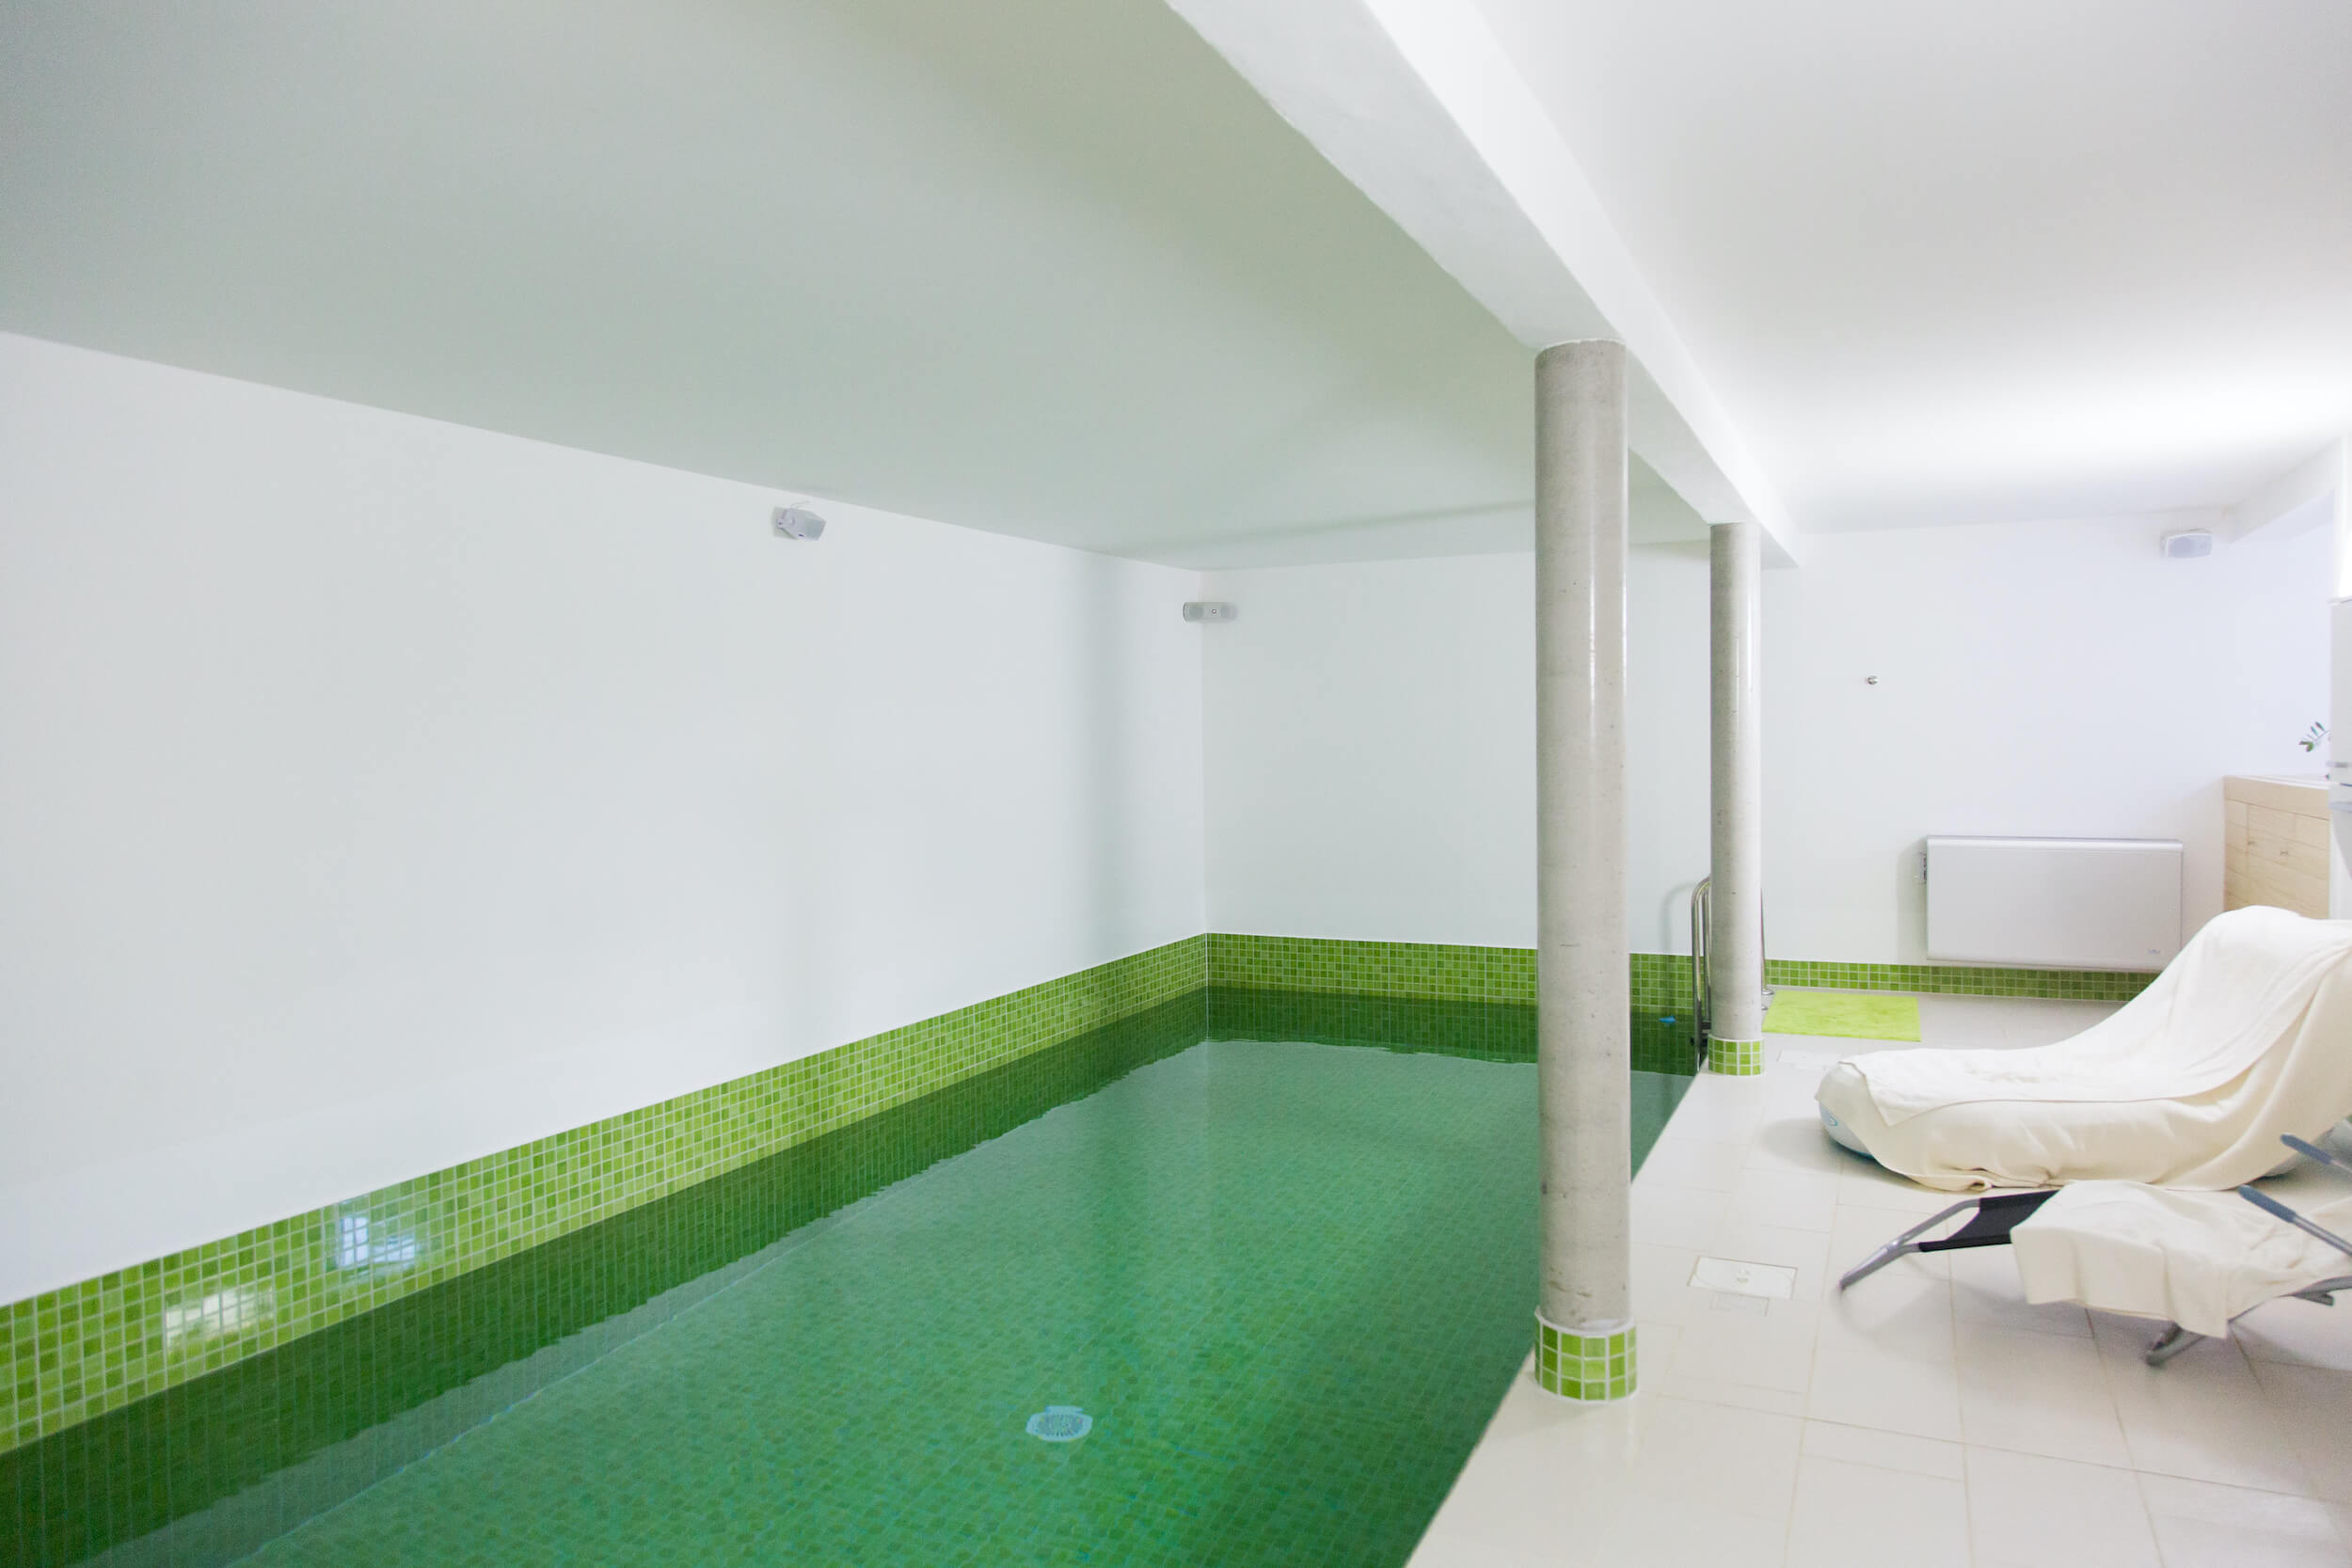 Indoor Poolanlage.